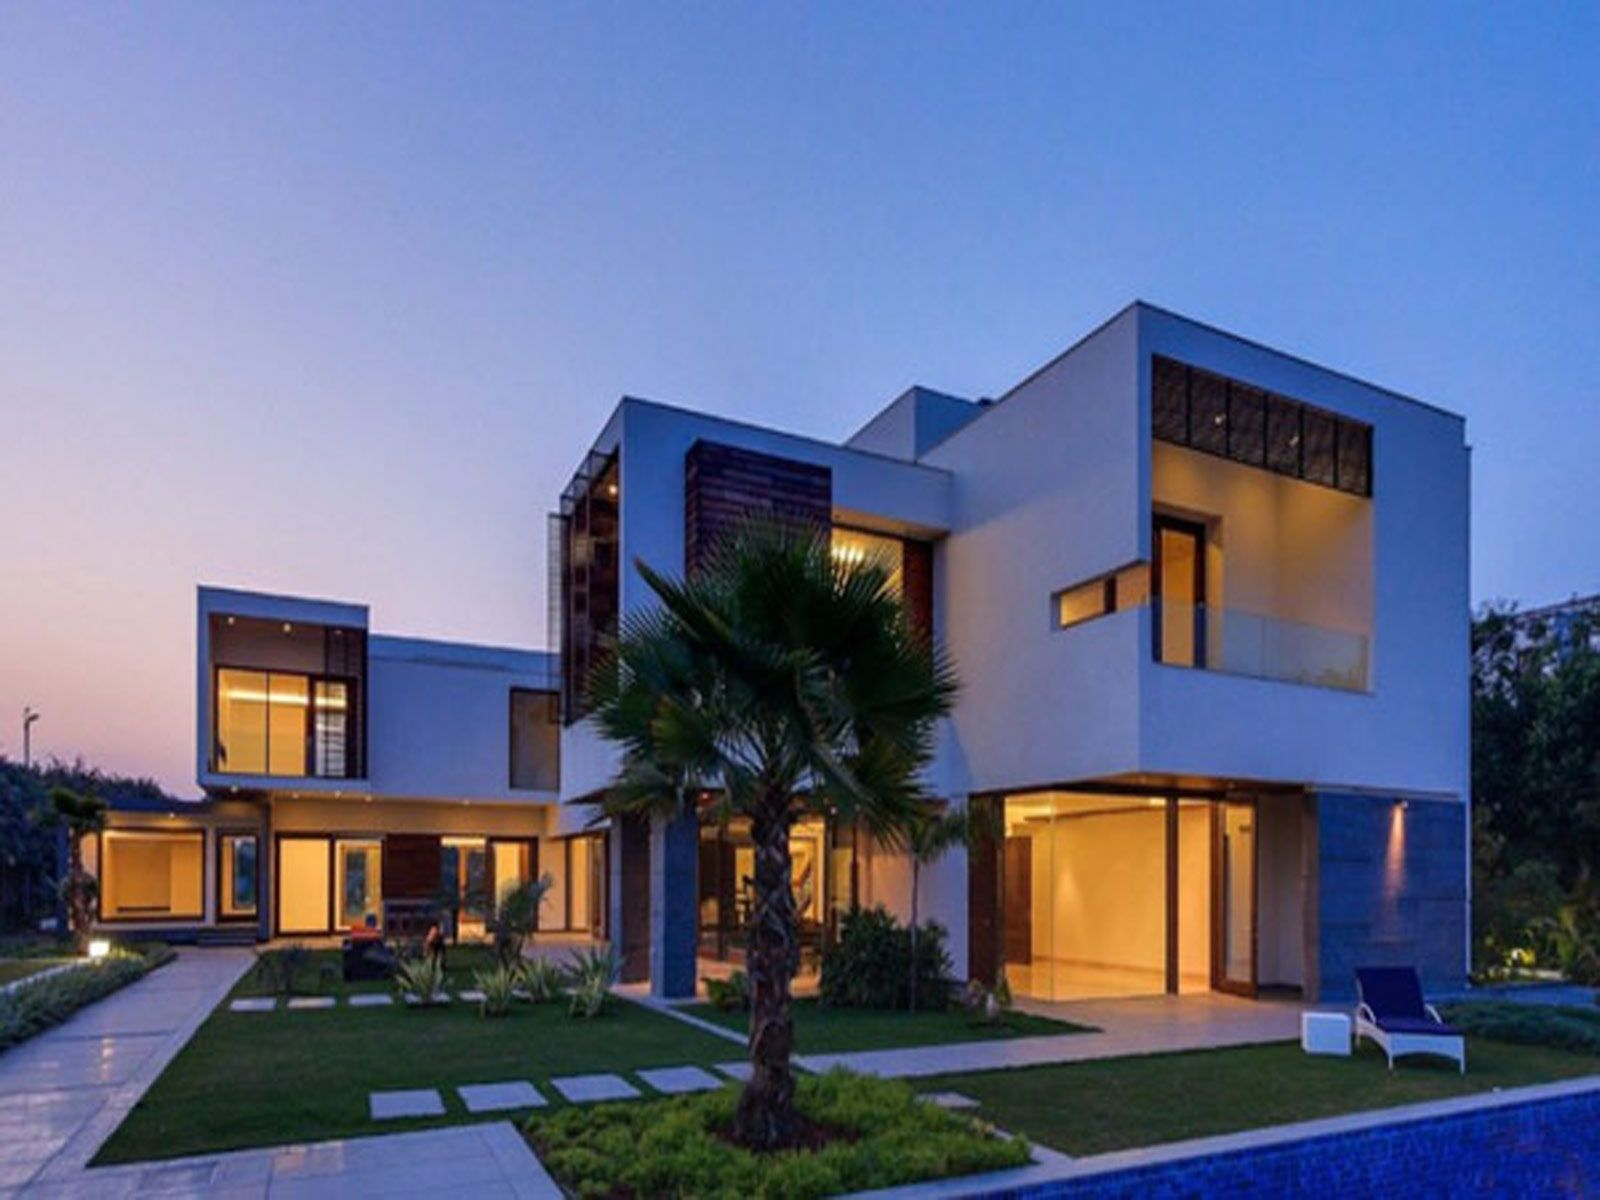 Contemporary luxury home and architecture in new design for Home designs for sale